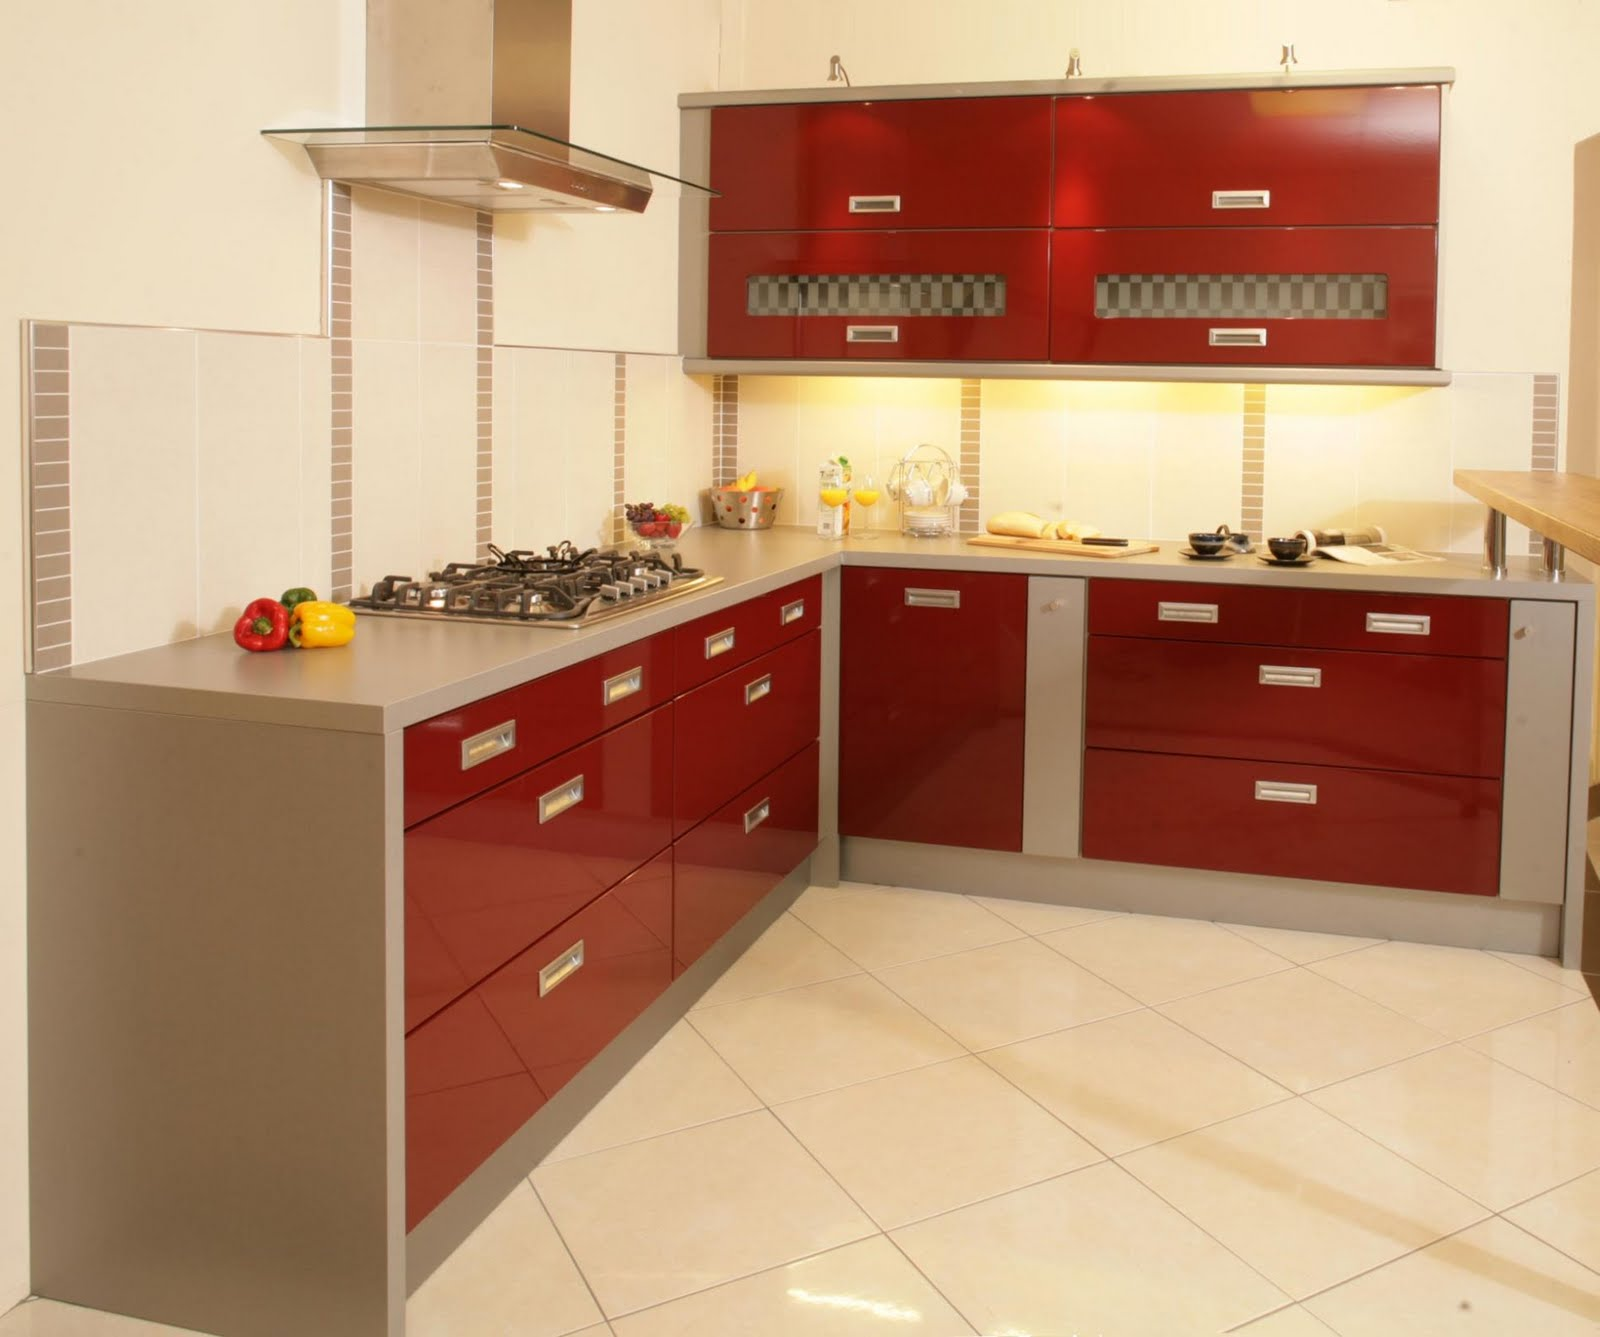 Pictures of red kitchen cabinets kitchen design best for Interior design ideas for kitchen cabinets